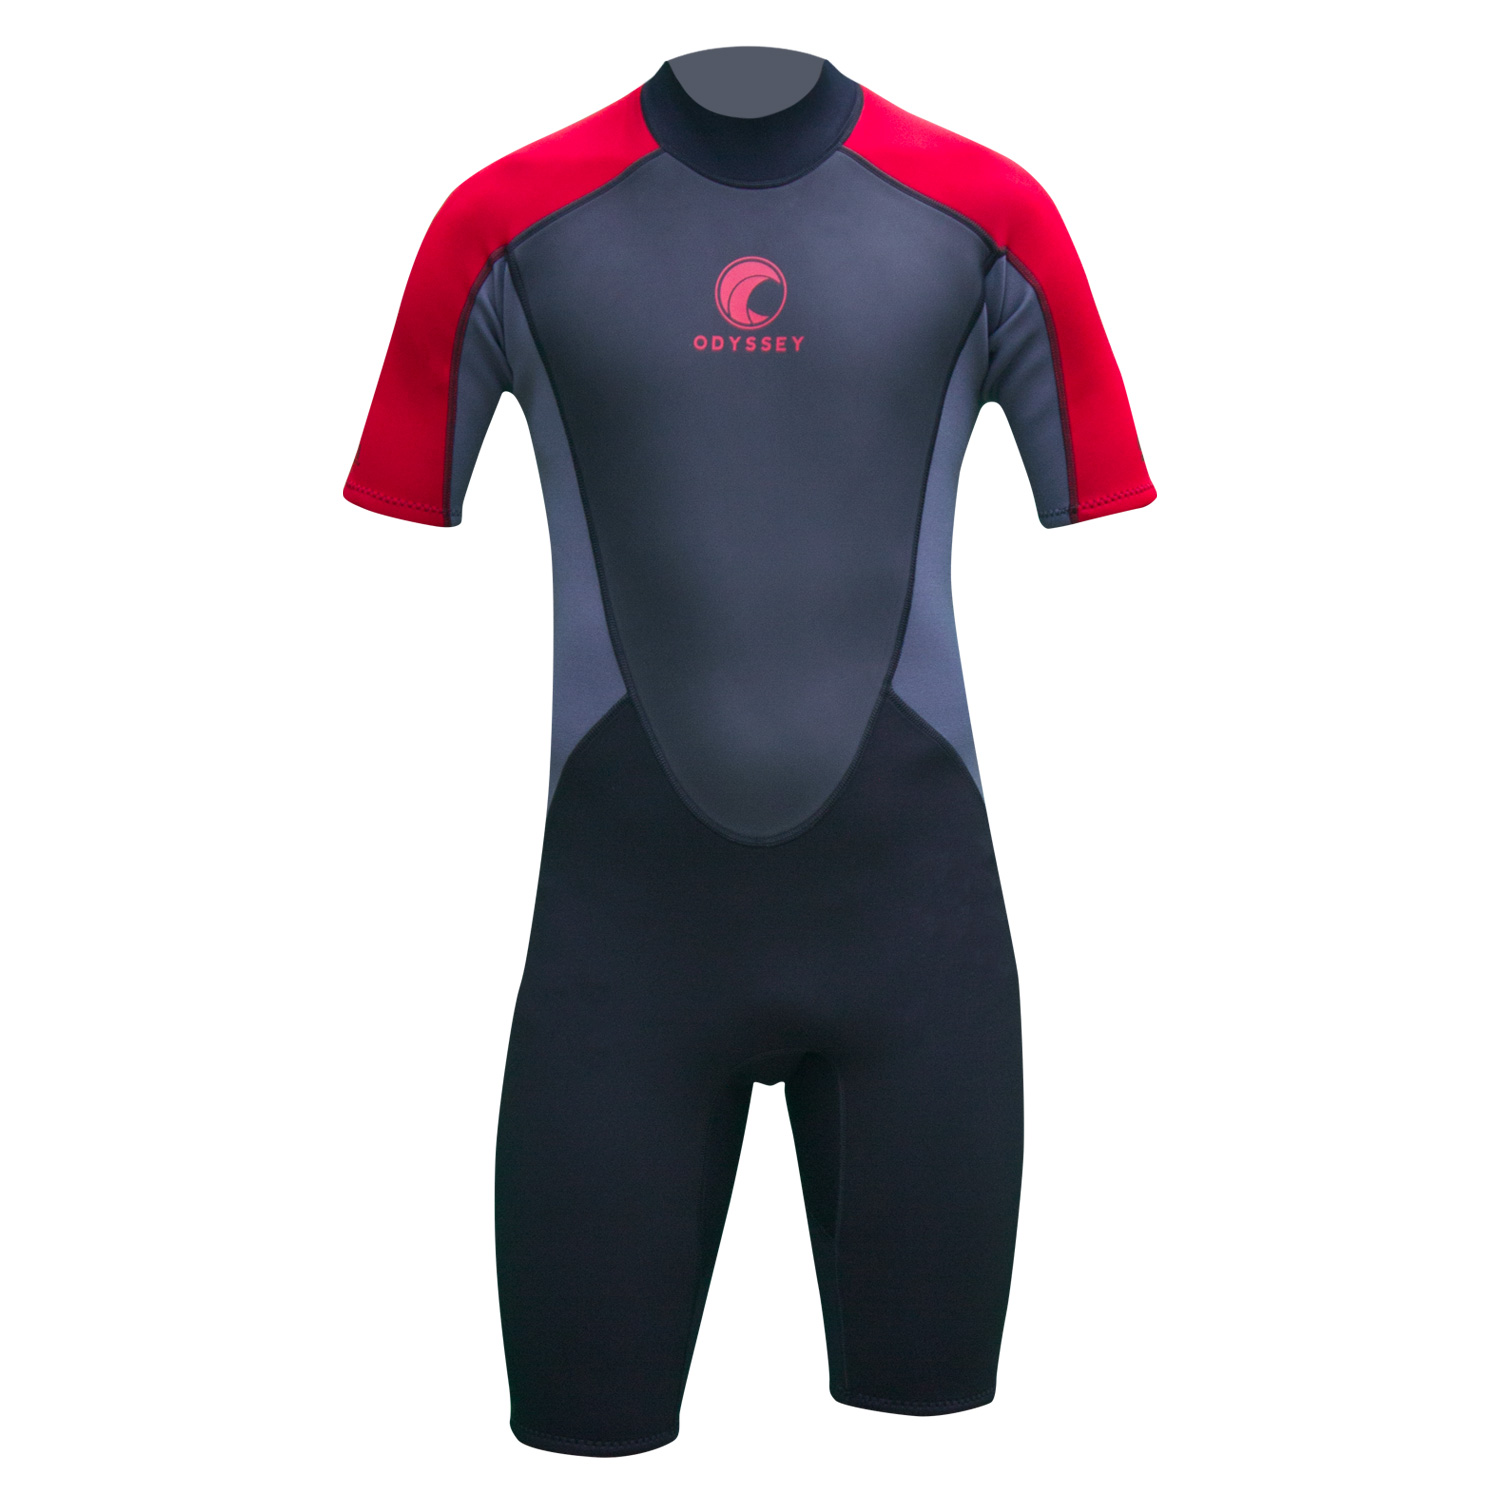 Odyssey-Core-3-2mm-Mens-Shorty-Wetsuit-Surf-Swim-Kayak-Shortie-Wet-Suit-S-XXL thumbnail 19